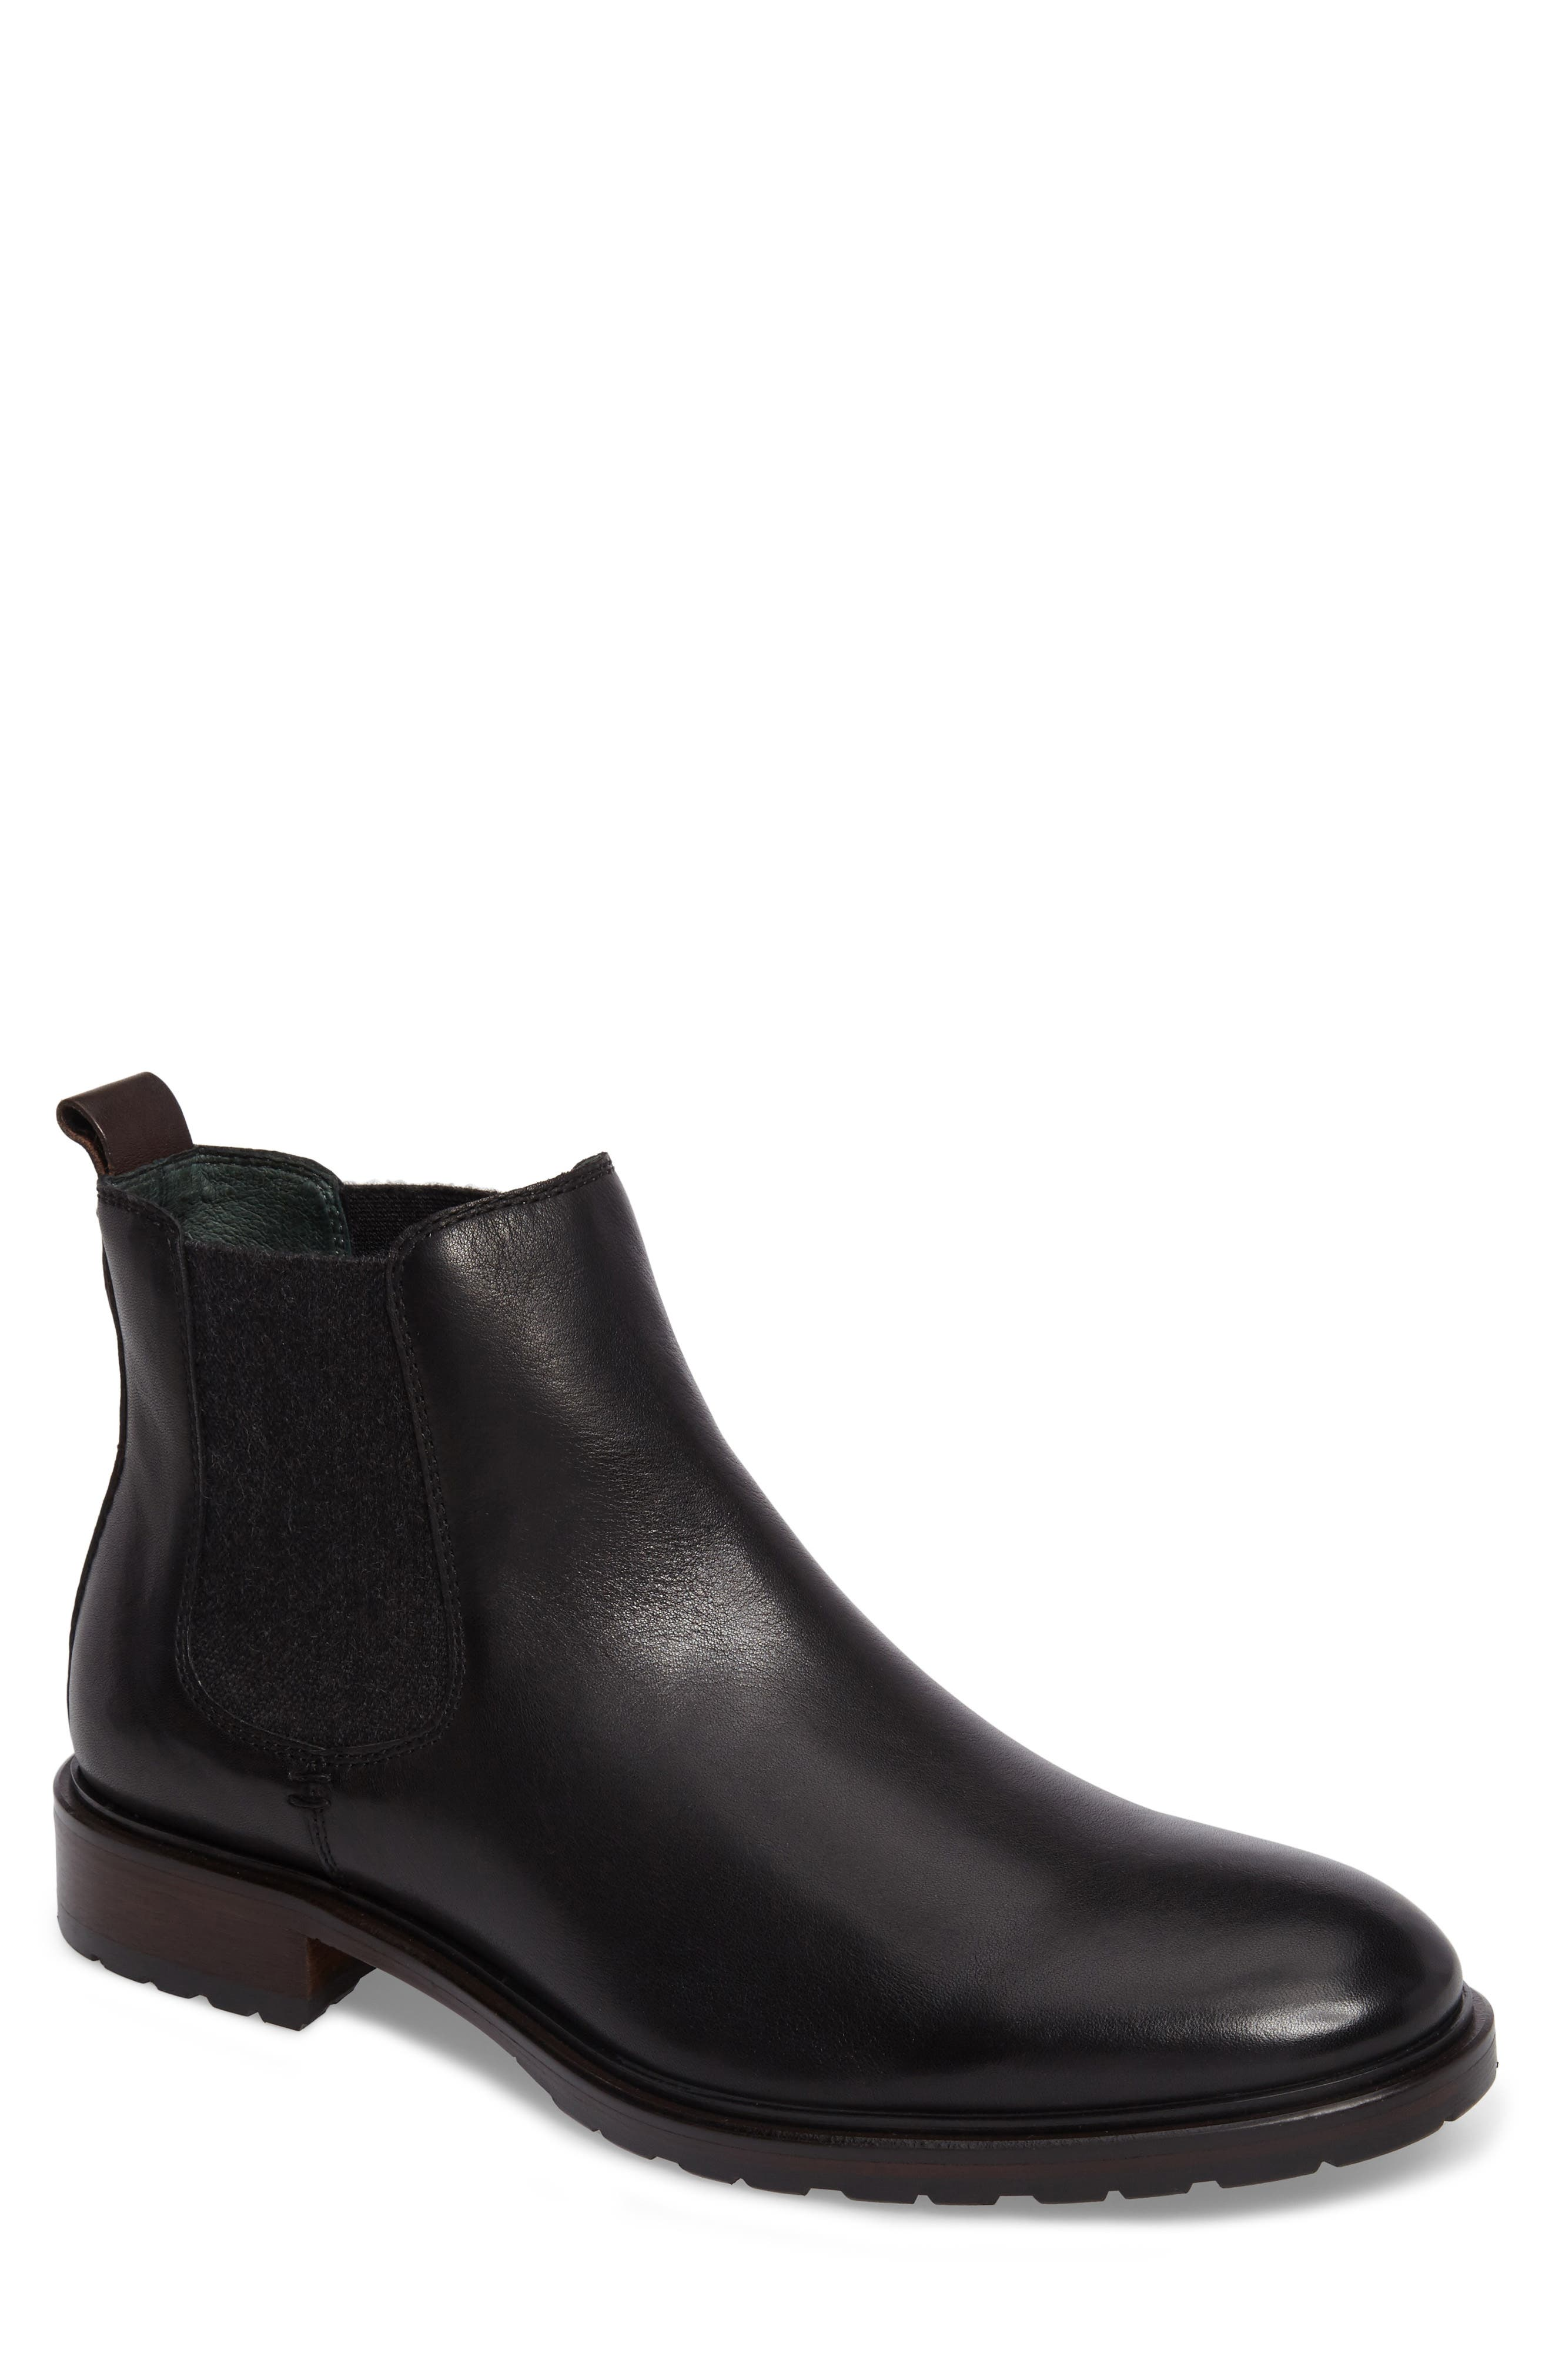 Myles Chelsea Boot,                         Main,                         color, 001